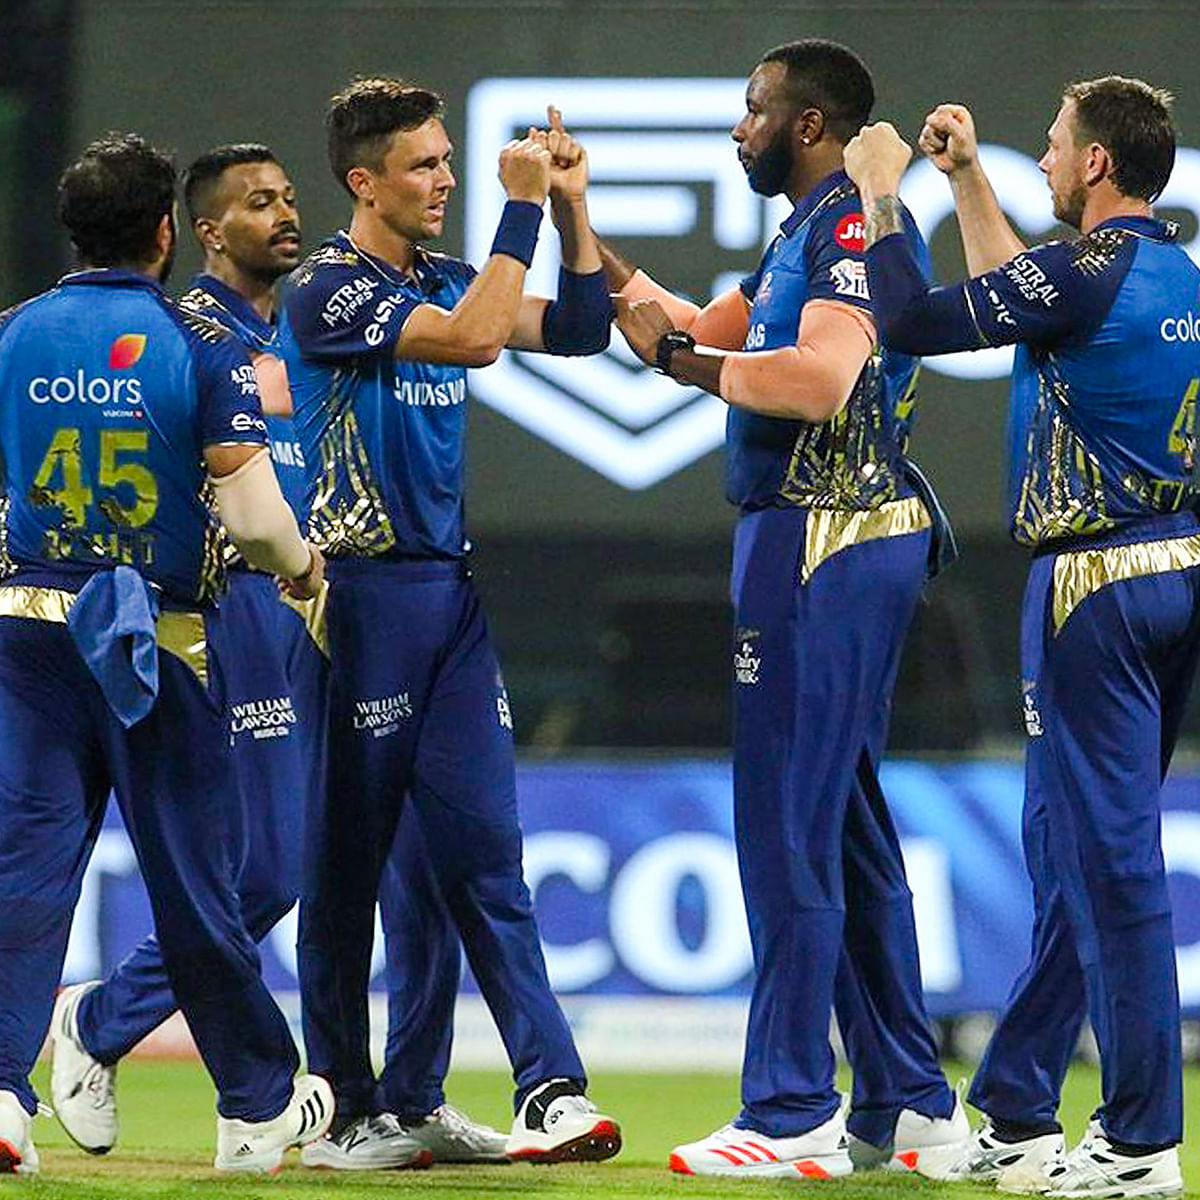 Watch: The Sports Journalist and FPJ presents The IPL After Party from Day 5 featuring MI vs KKR